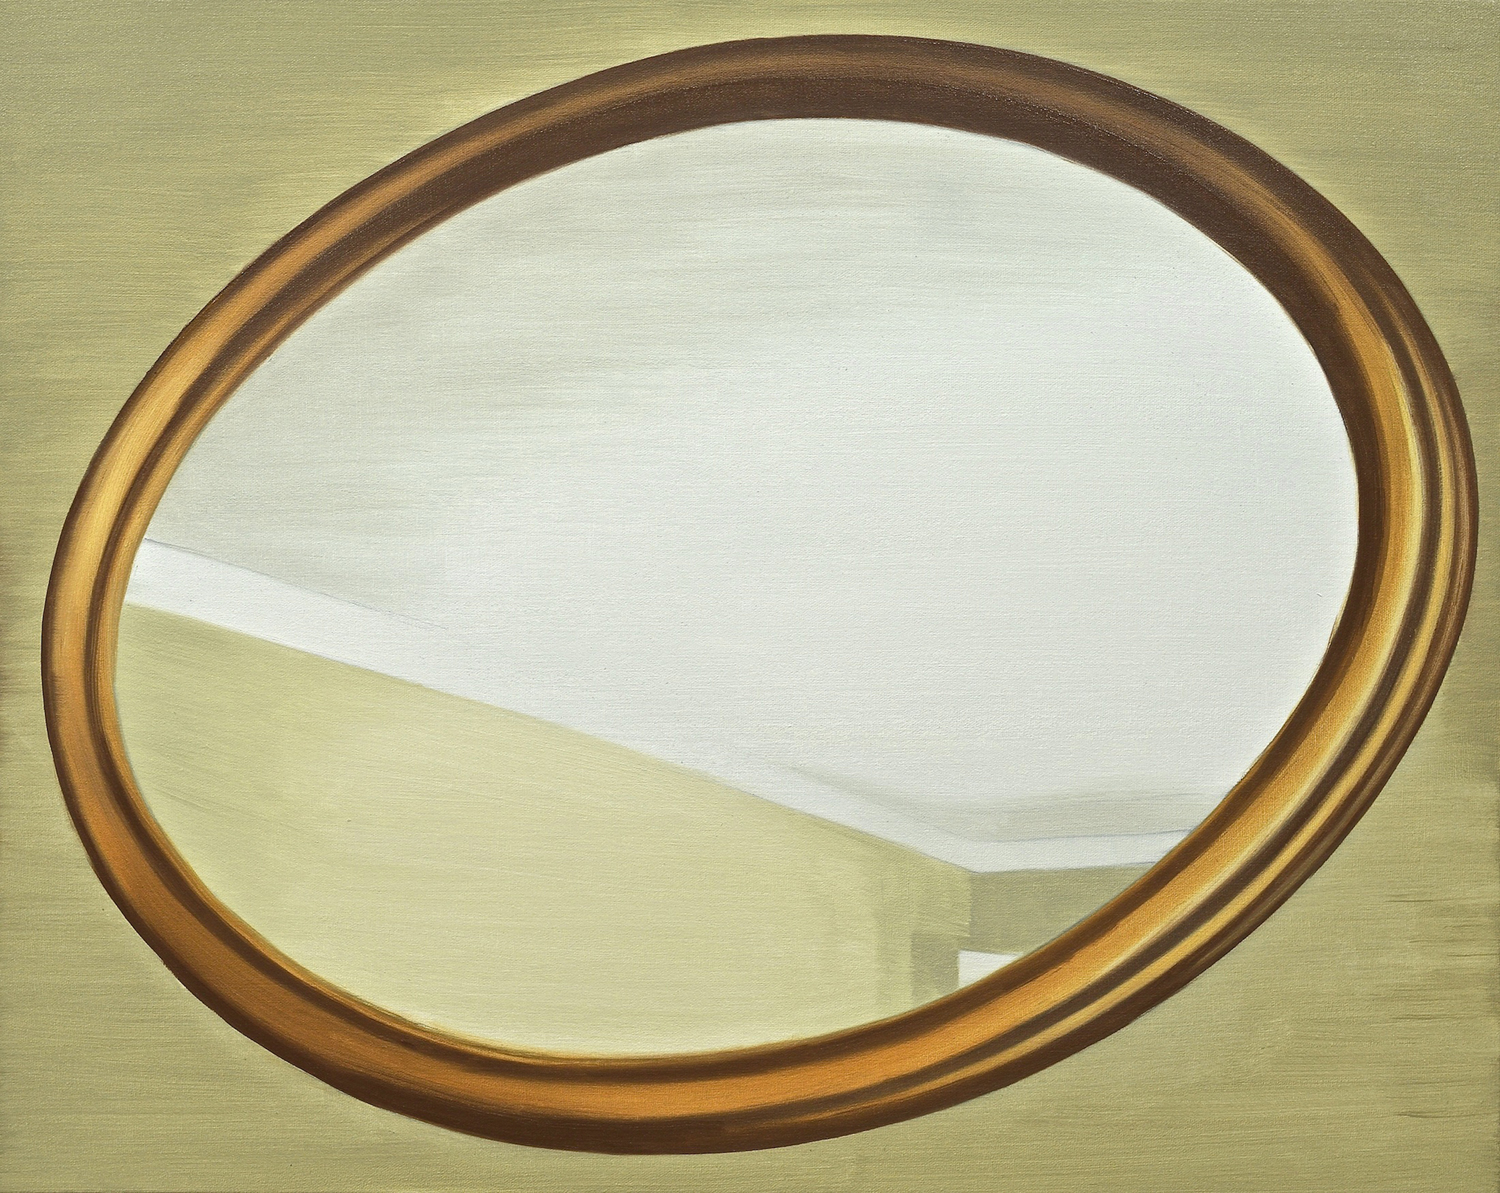 Untitled (Mirror I)  2016 oil on canvas on panel 24 x 30 inches